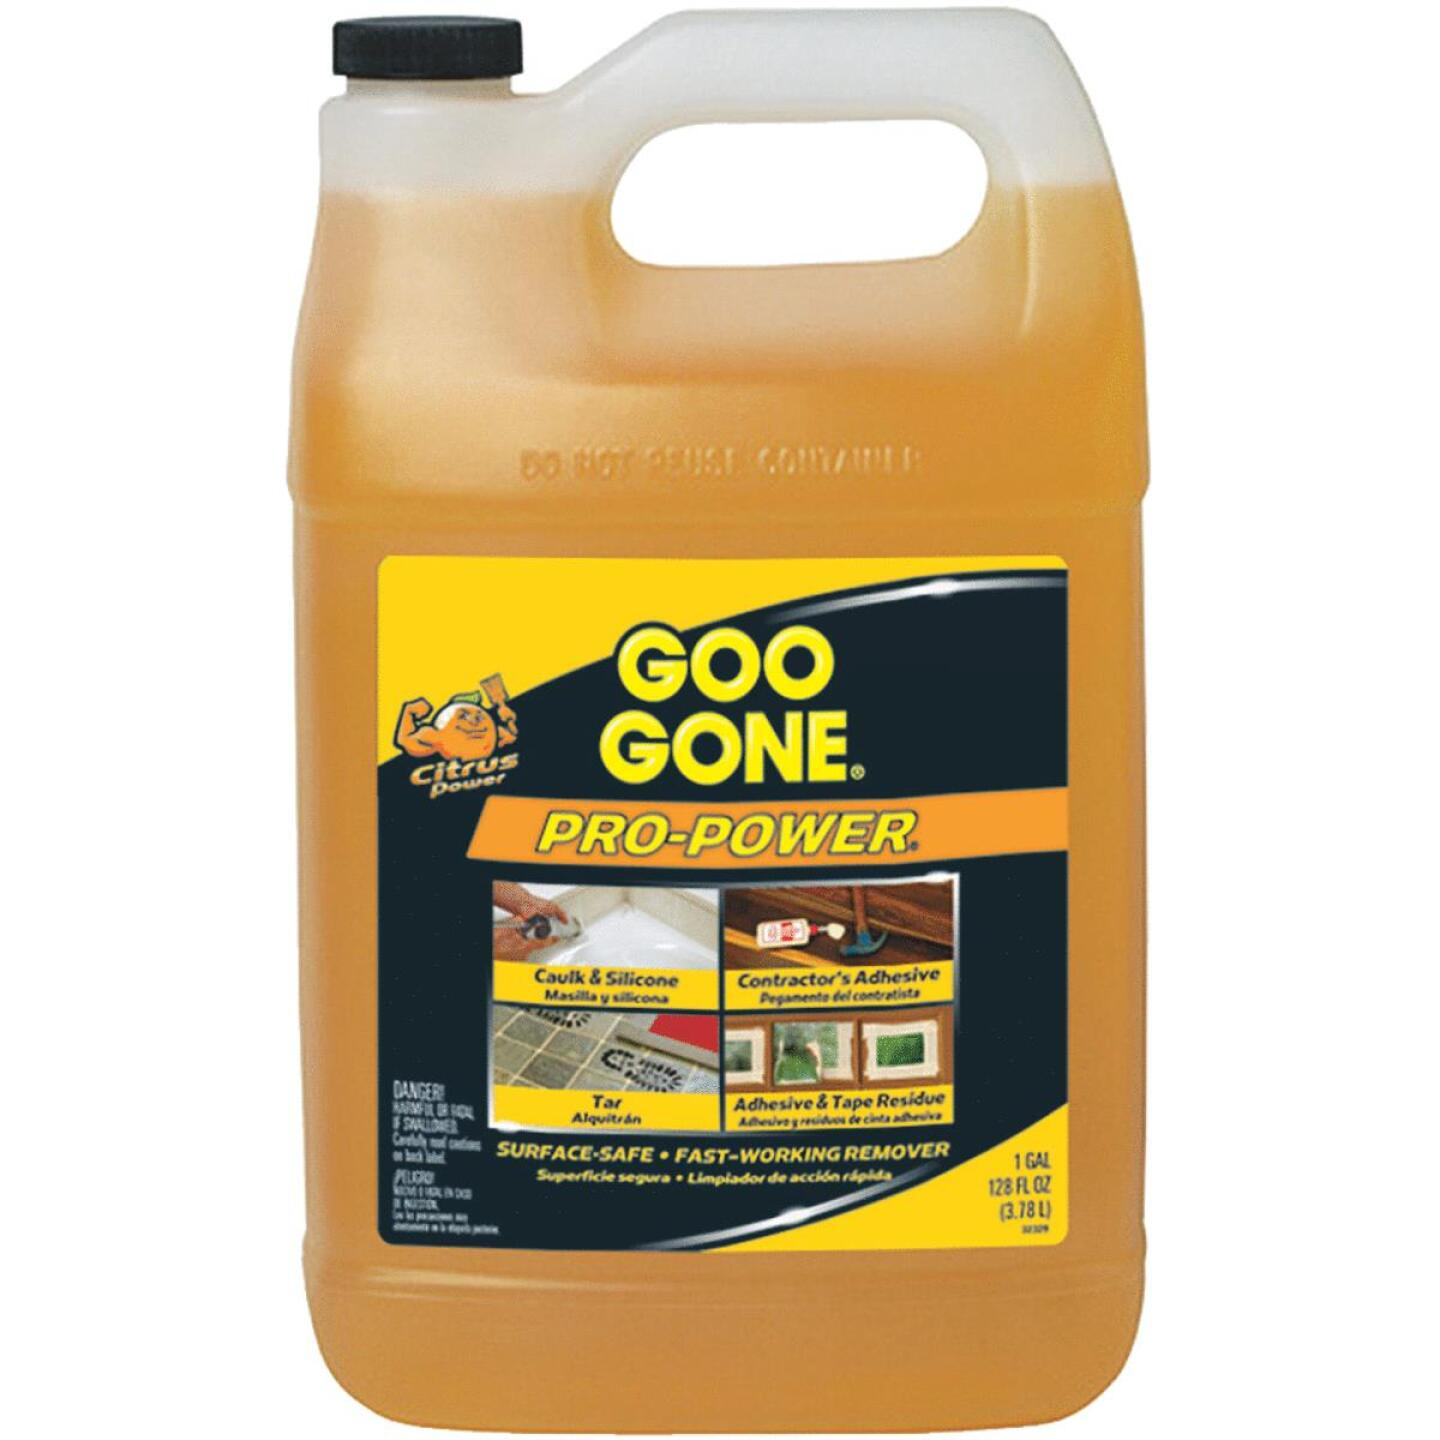 Goo Gone 1 Gal. Pro-Power Adhesive Remover Image 191